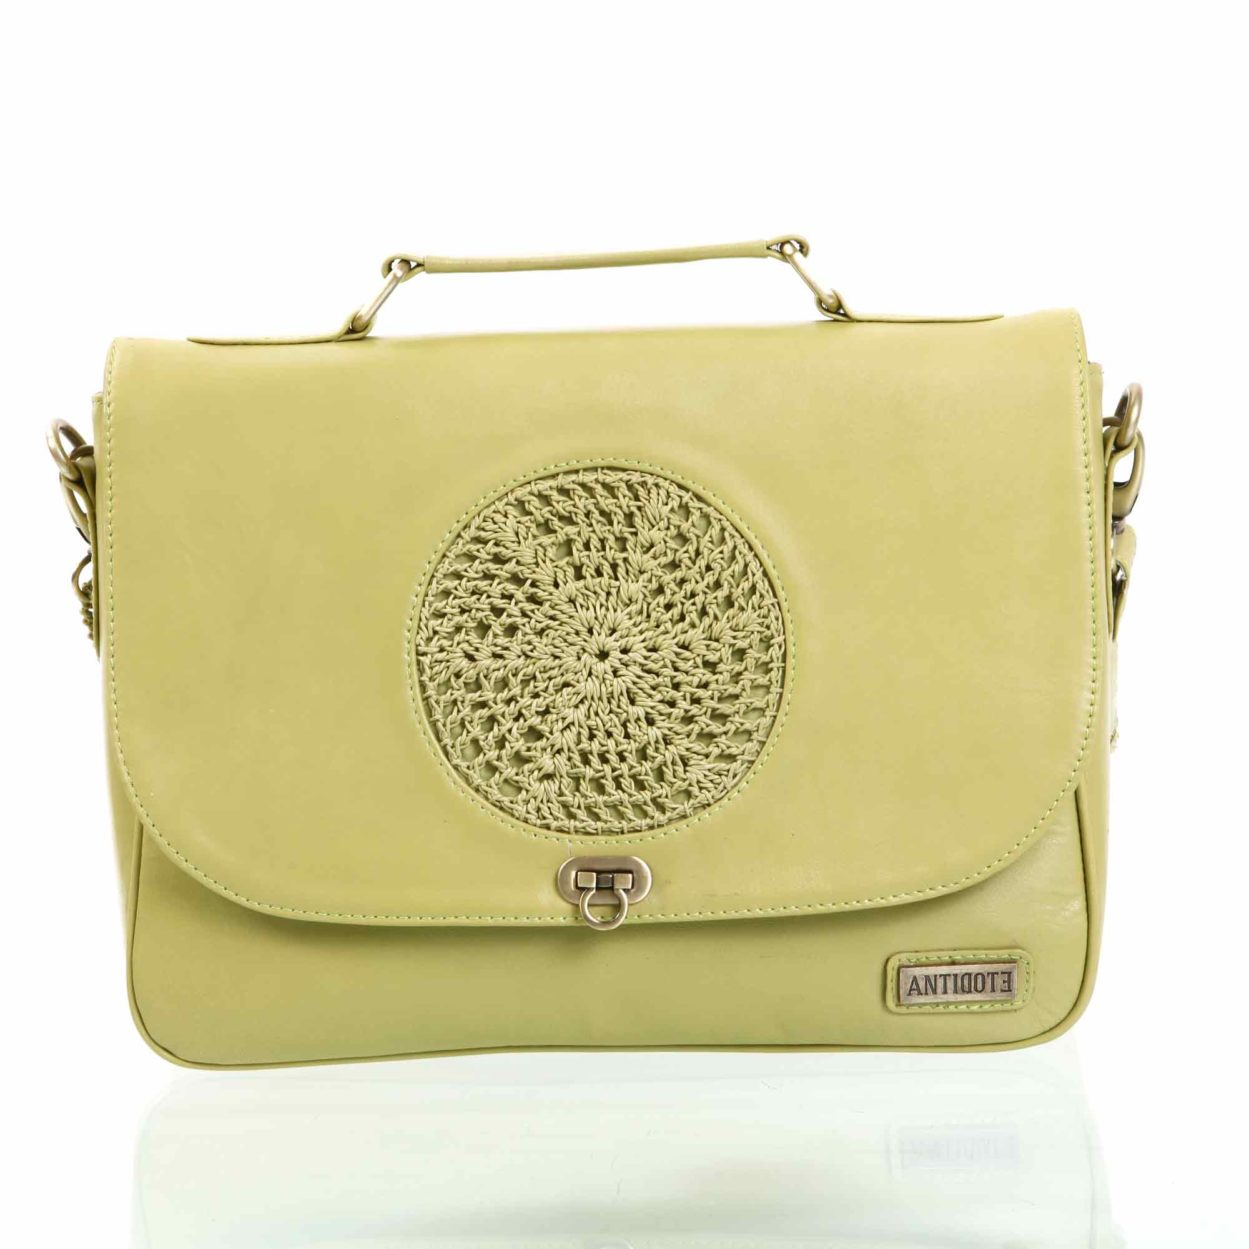 Mireille green leather handbag